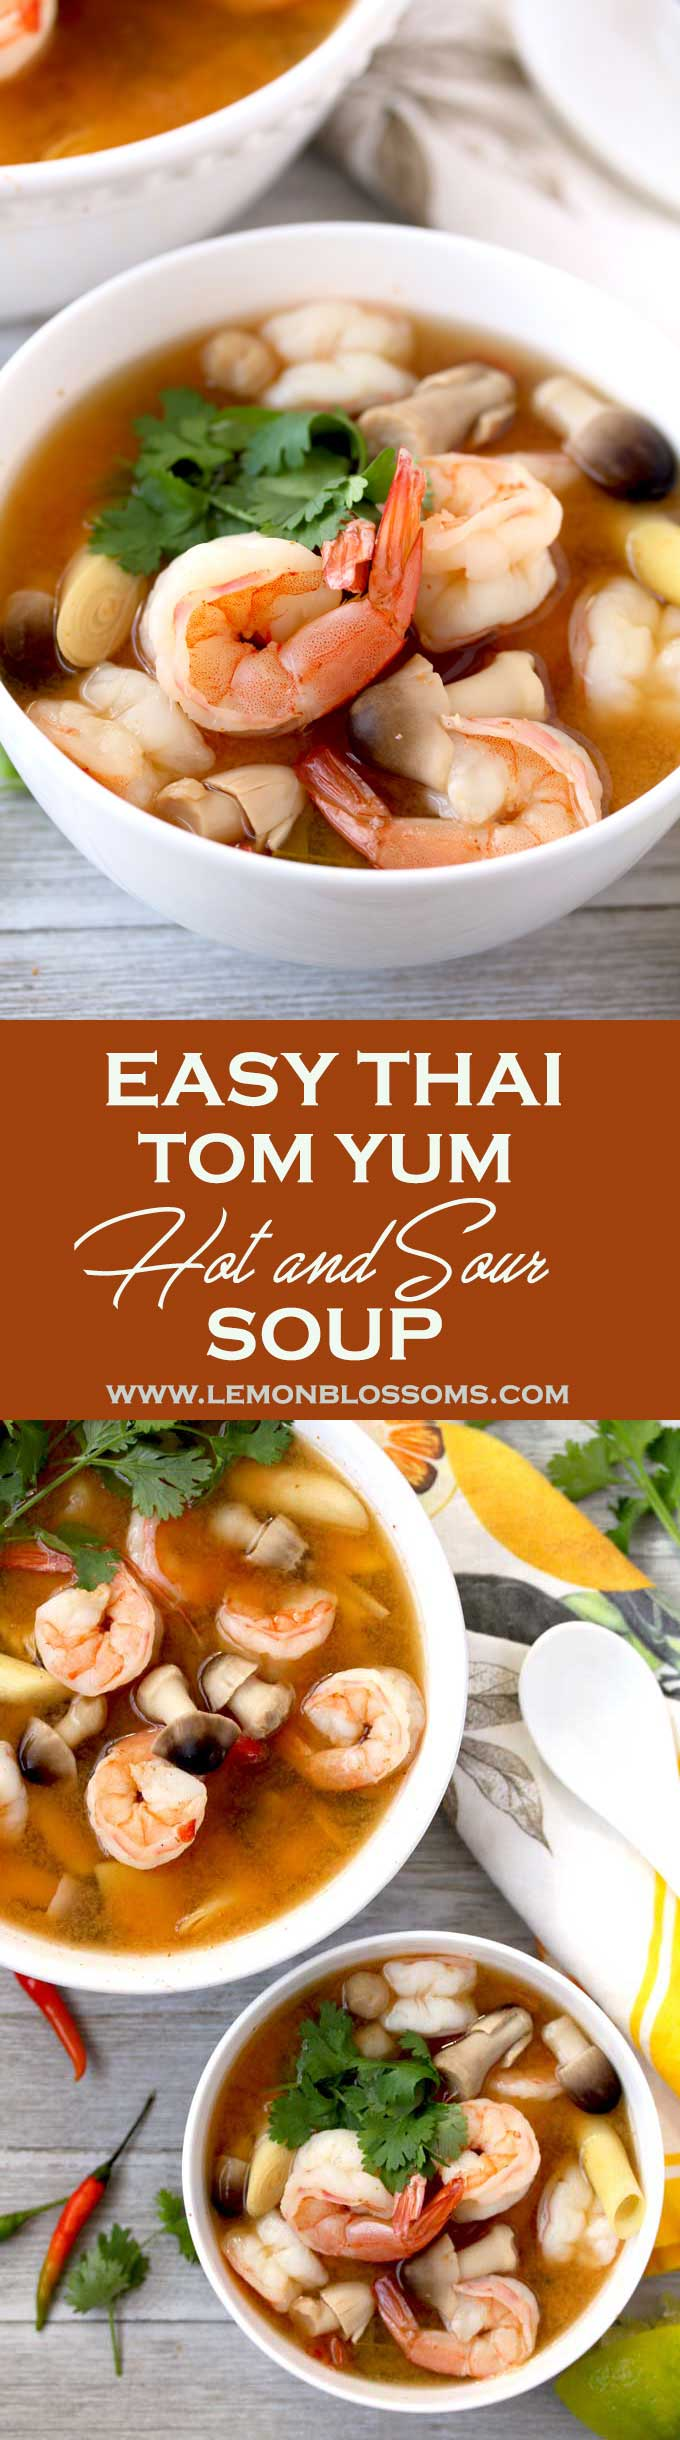 Thai Tom Yum Soup (Thai Hot and Sour Soup) is one of the easiest and quickest soups to make. The full flavored broth is infused with lemongrass, ginger and Thai chiles. Plump Shrimp, straw mushrooms and fresh cilantro complete this delicious and warming soup. #Thai #soup #tomyum #hotandsour #easy